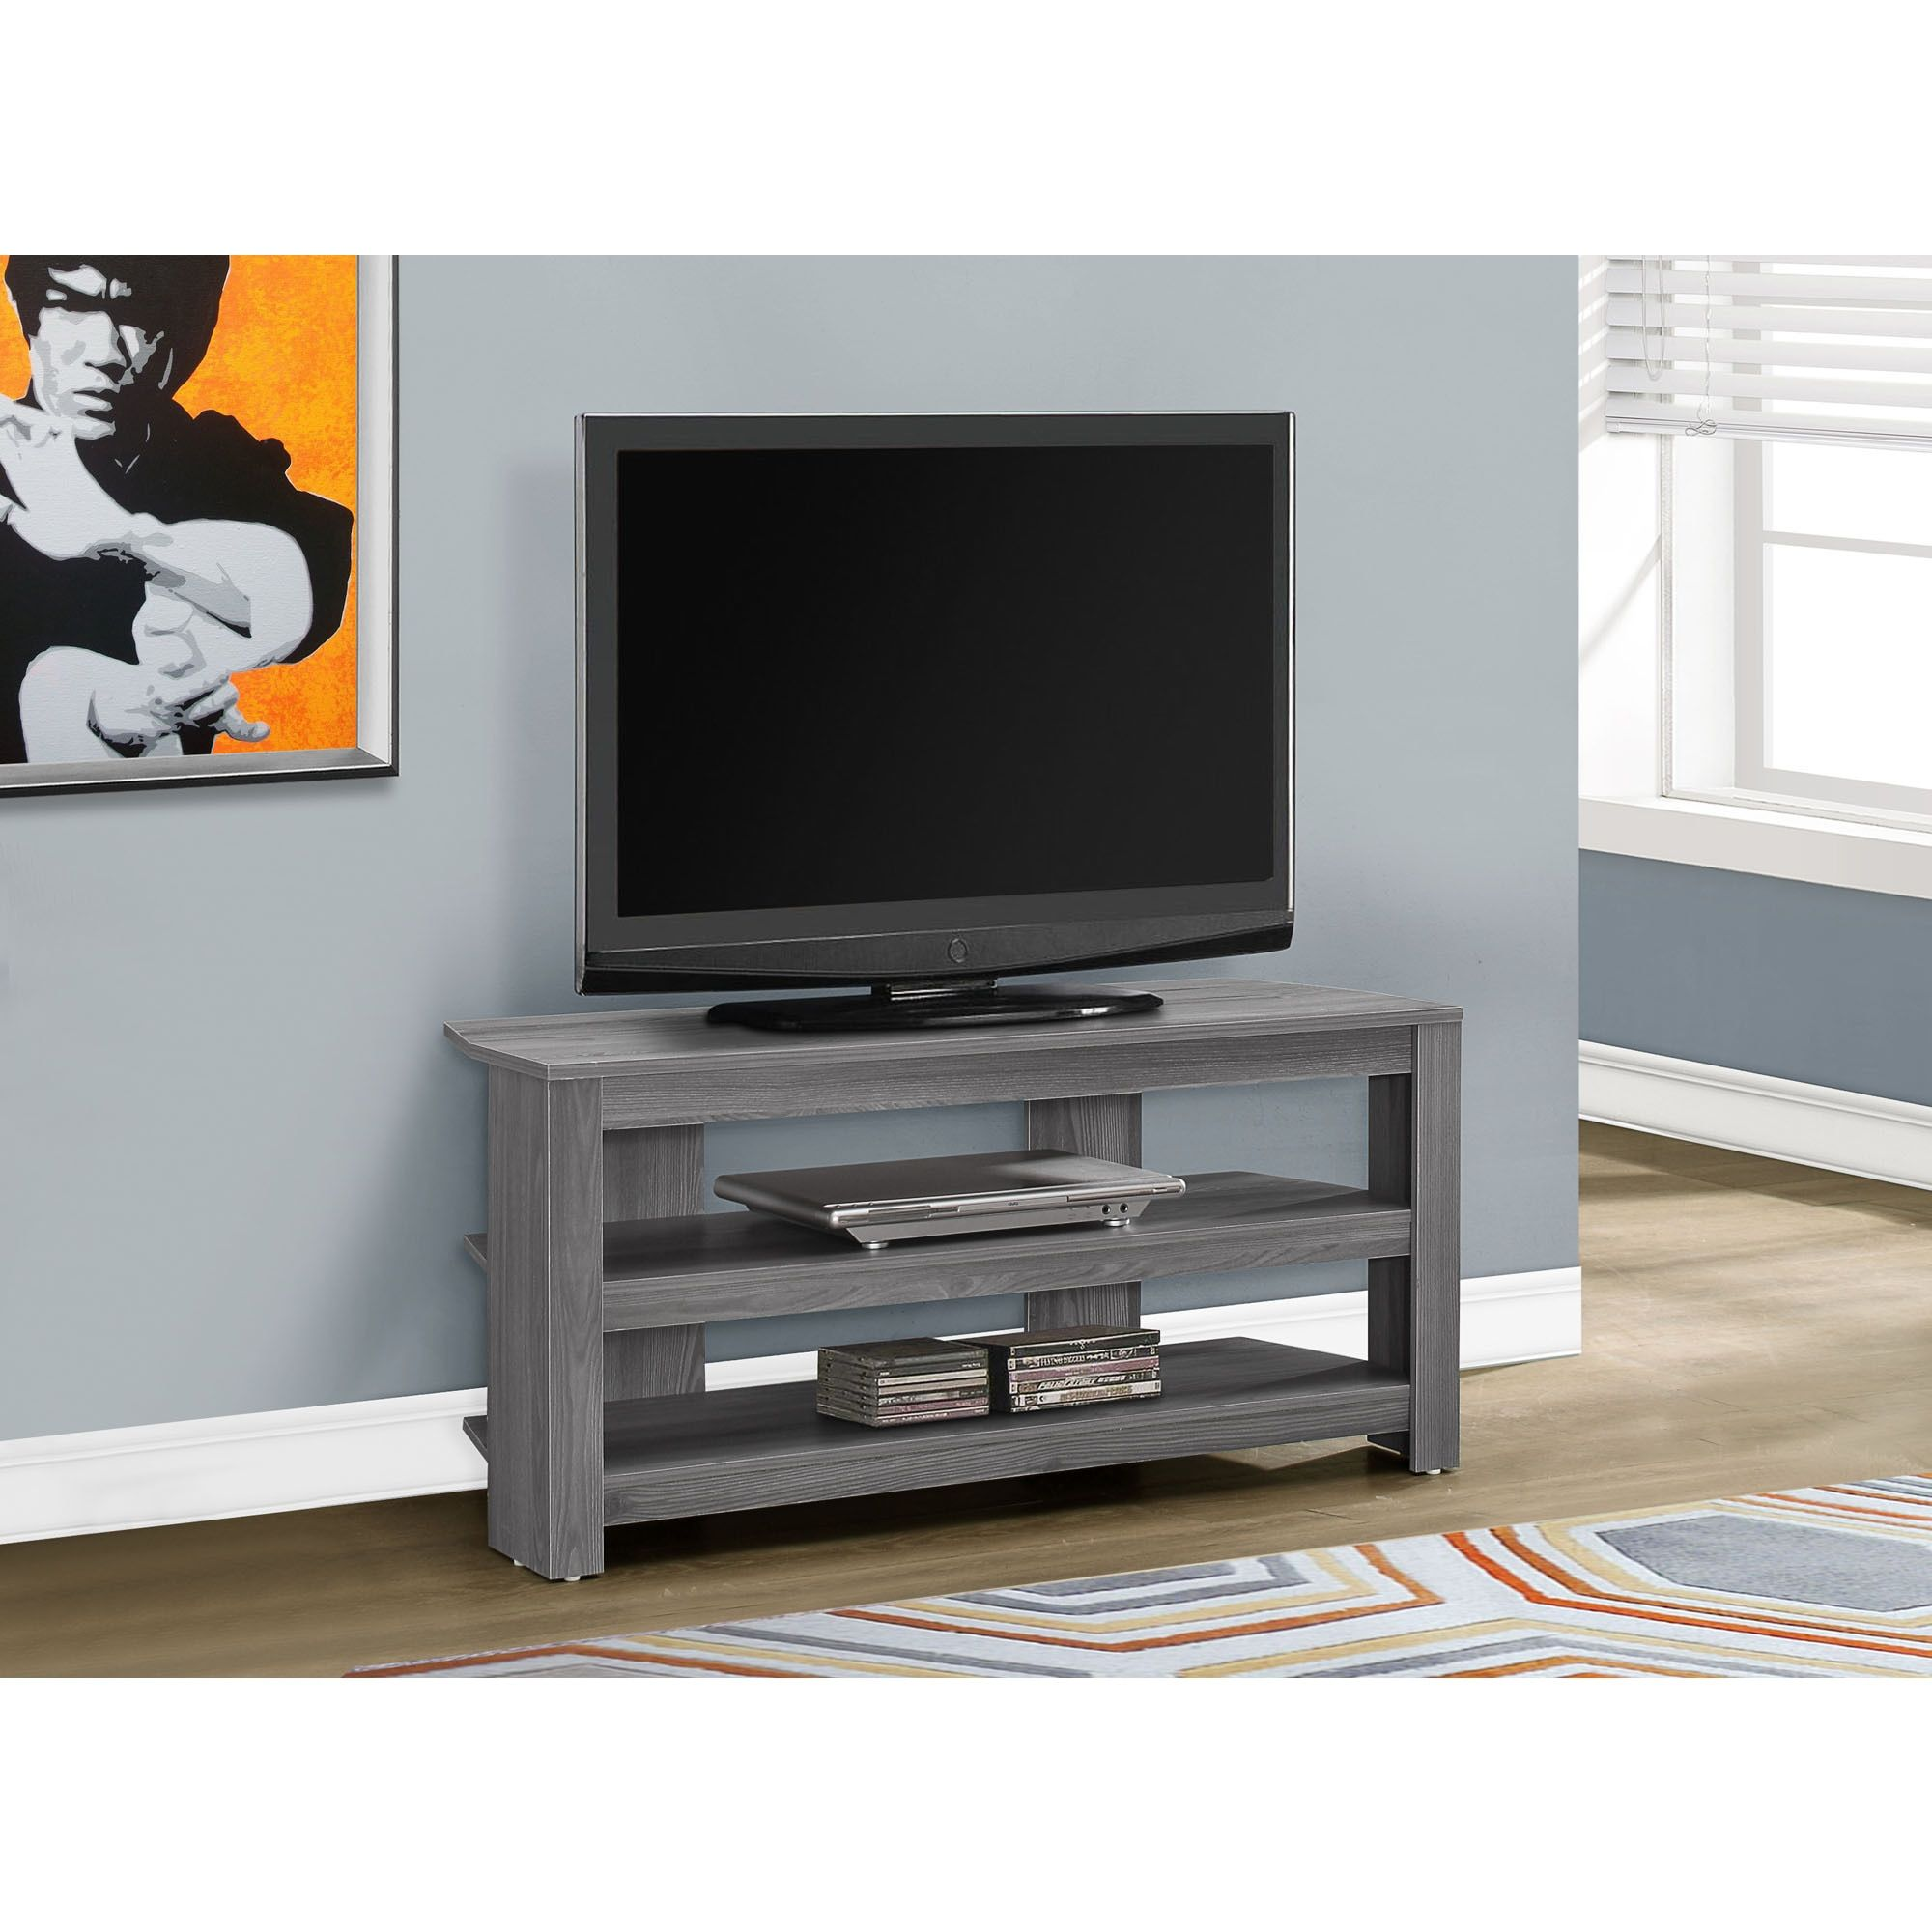 Beautiful Tv Stands with Storage Cabinets